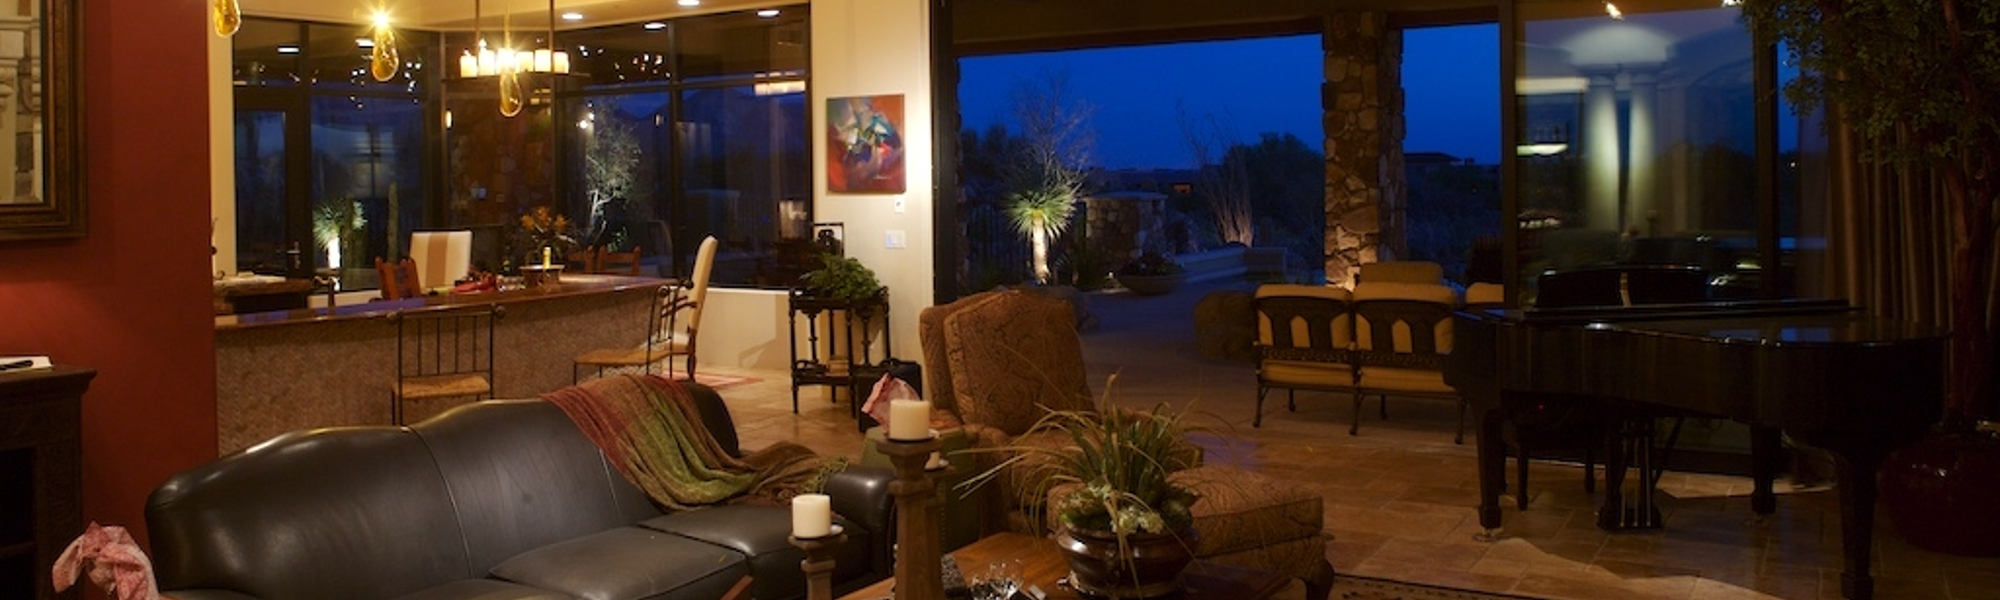 Schaefer Design Group & Barbara Schaefer Interior Designer | Schaefer Design Group Tucson ...